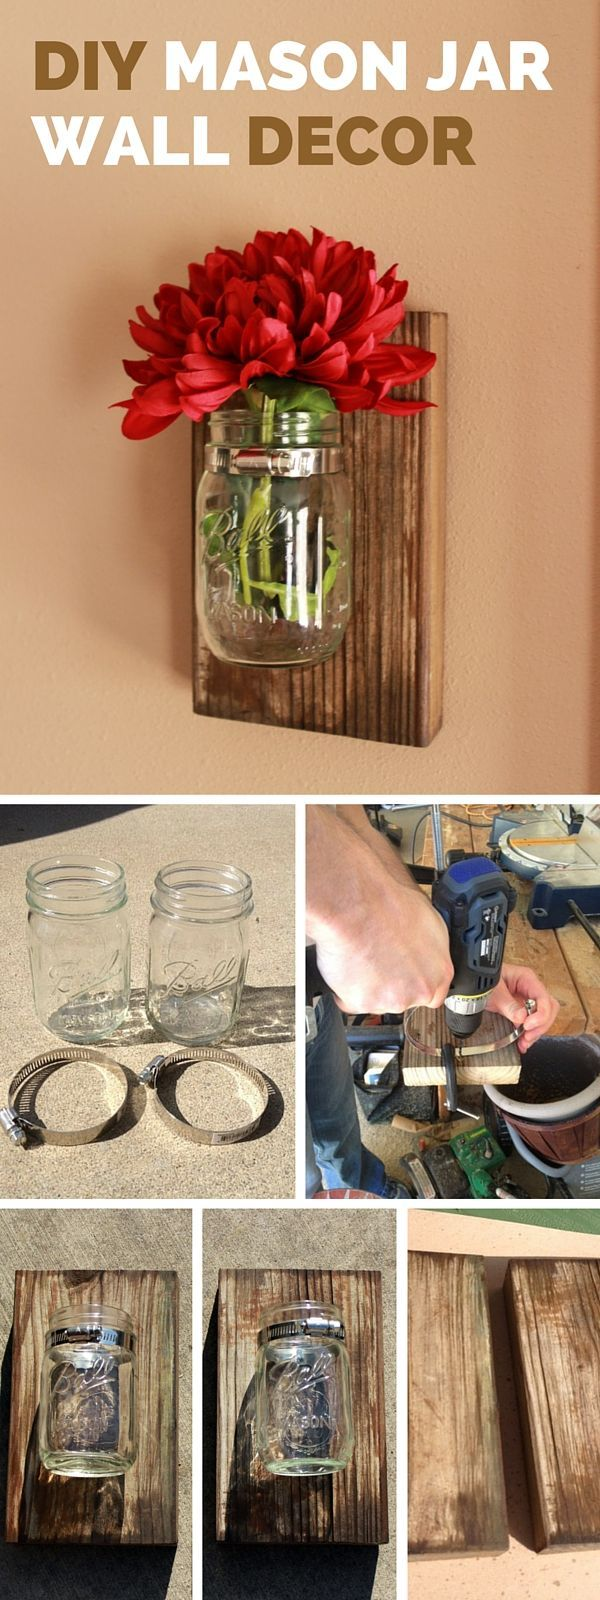 diy mason jar wall decor - Diy Decor